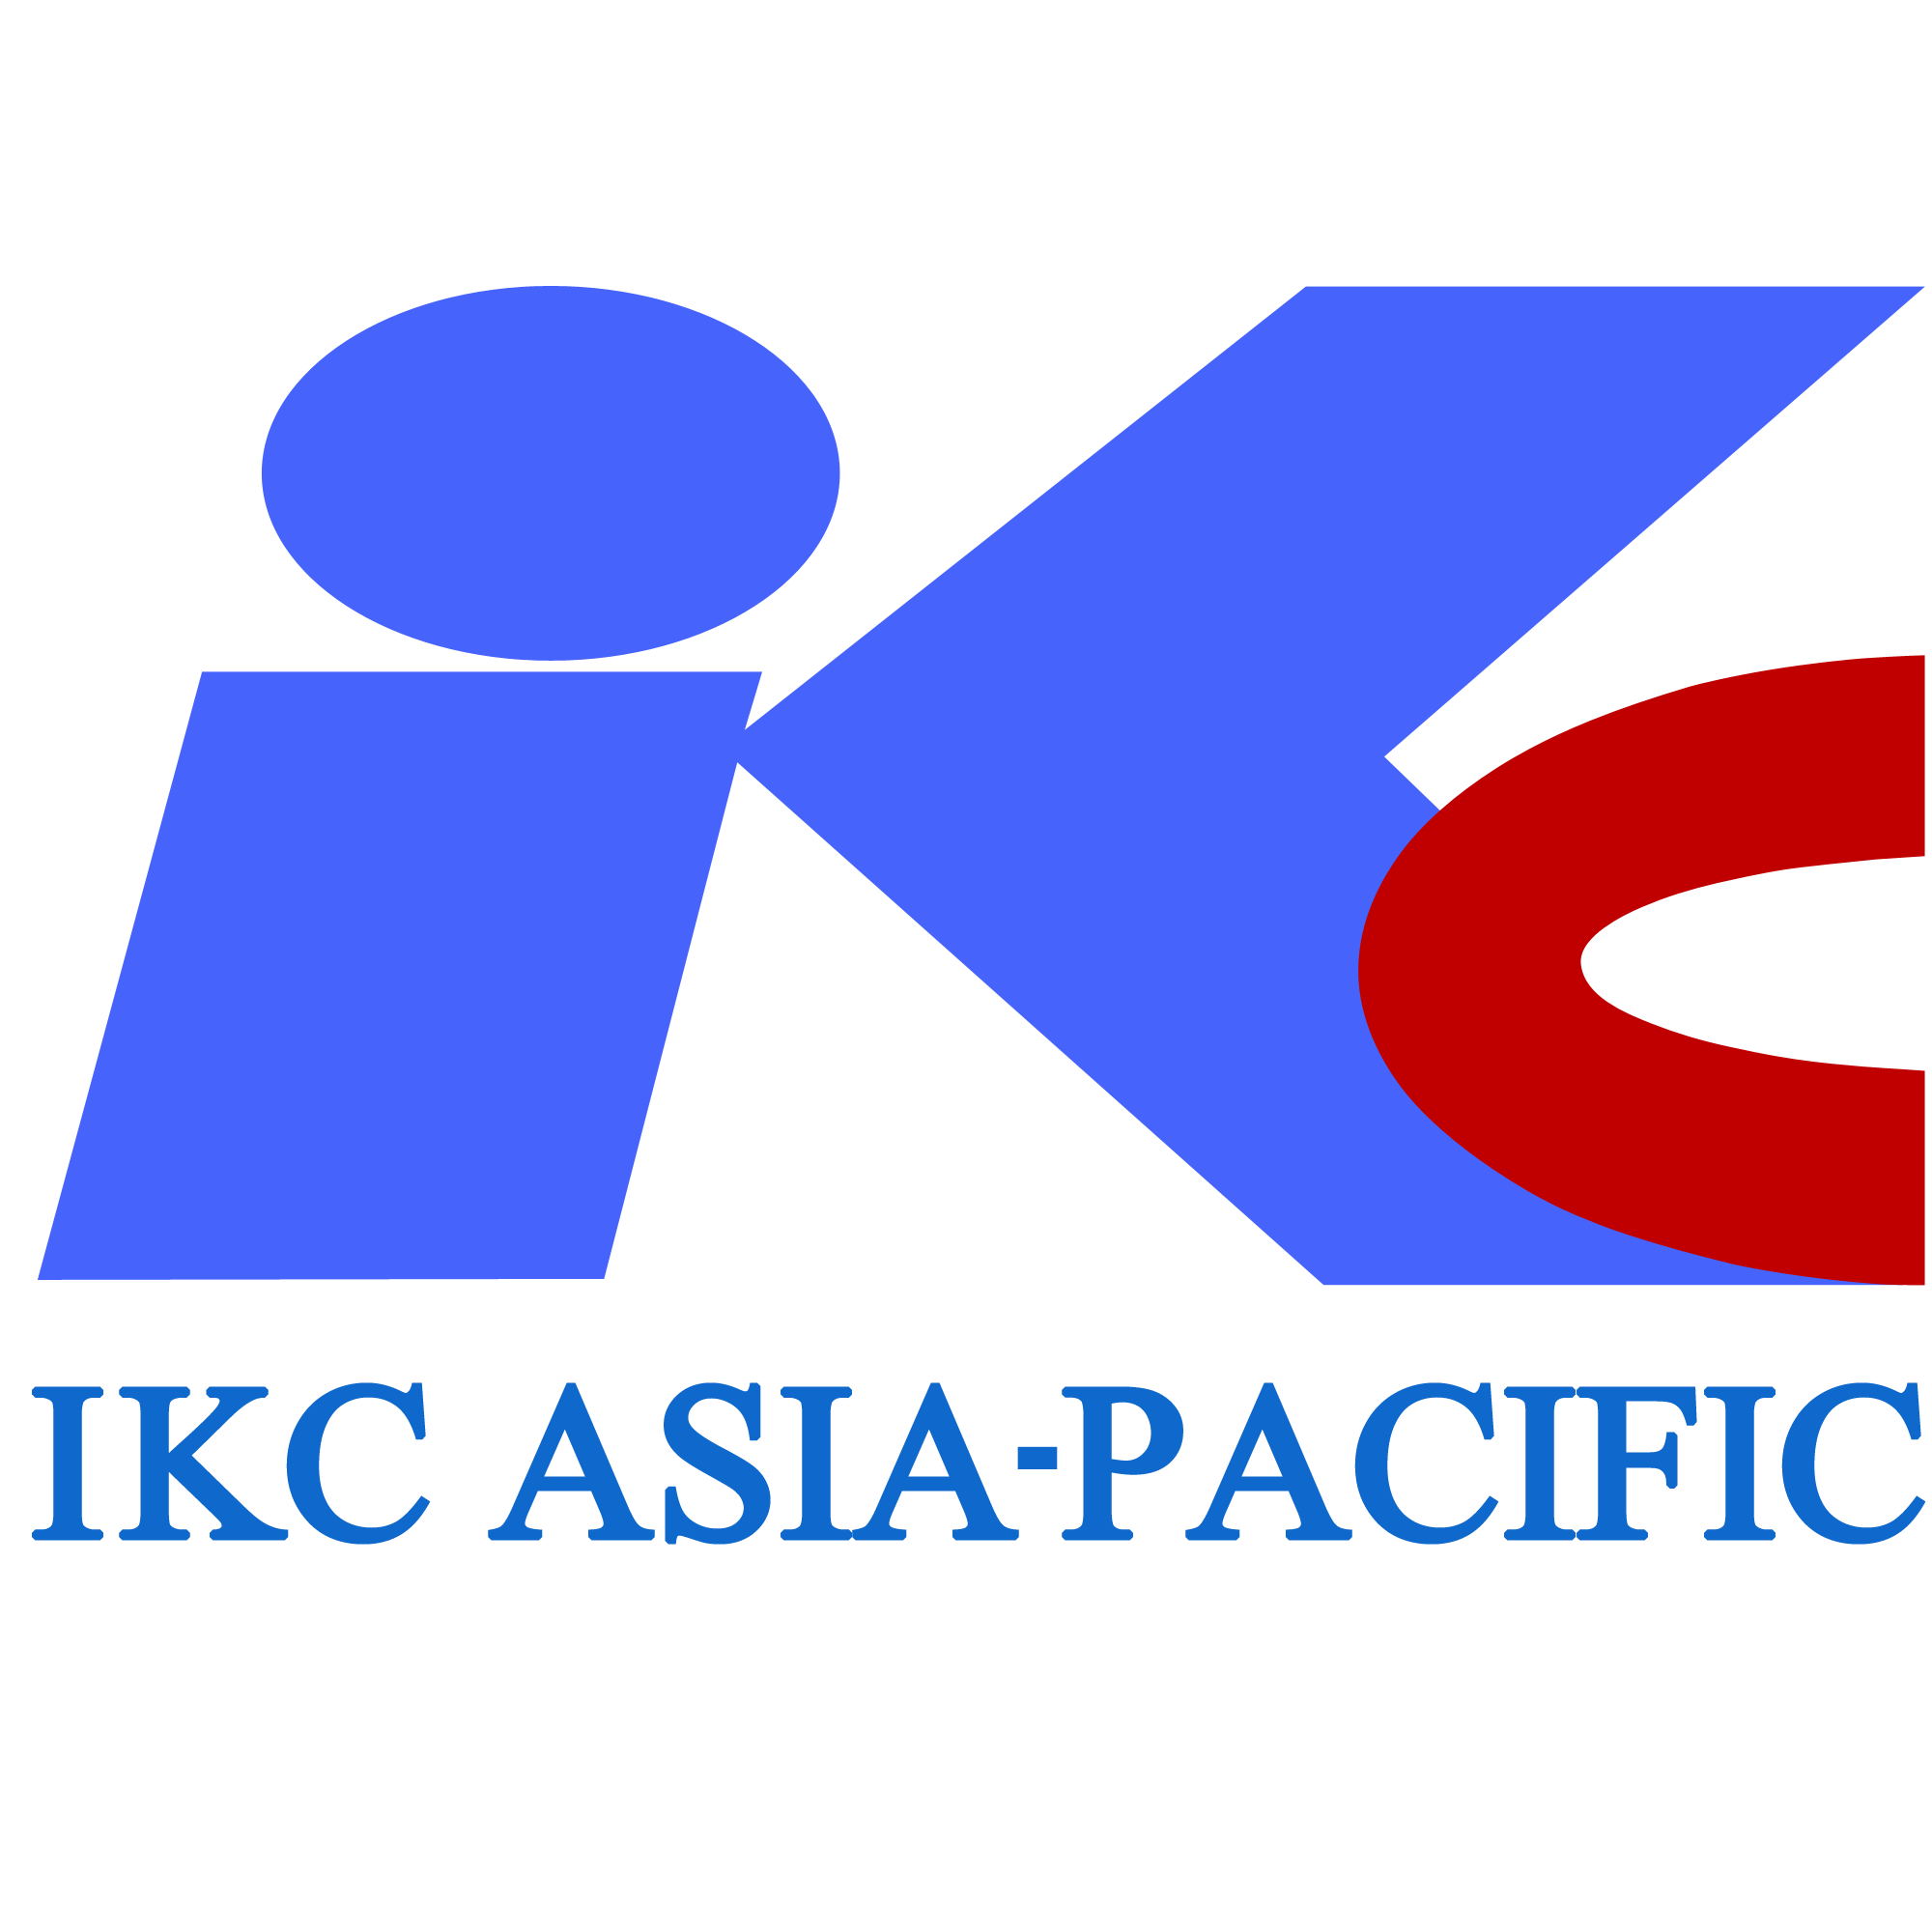 IKC Asia-Pacific